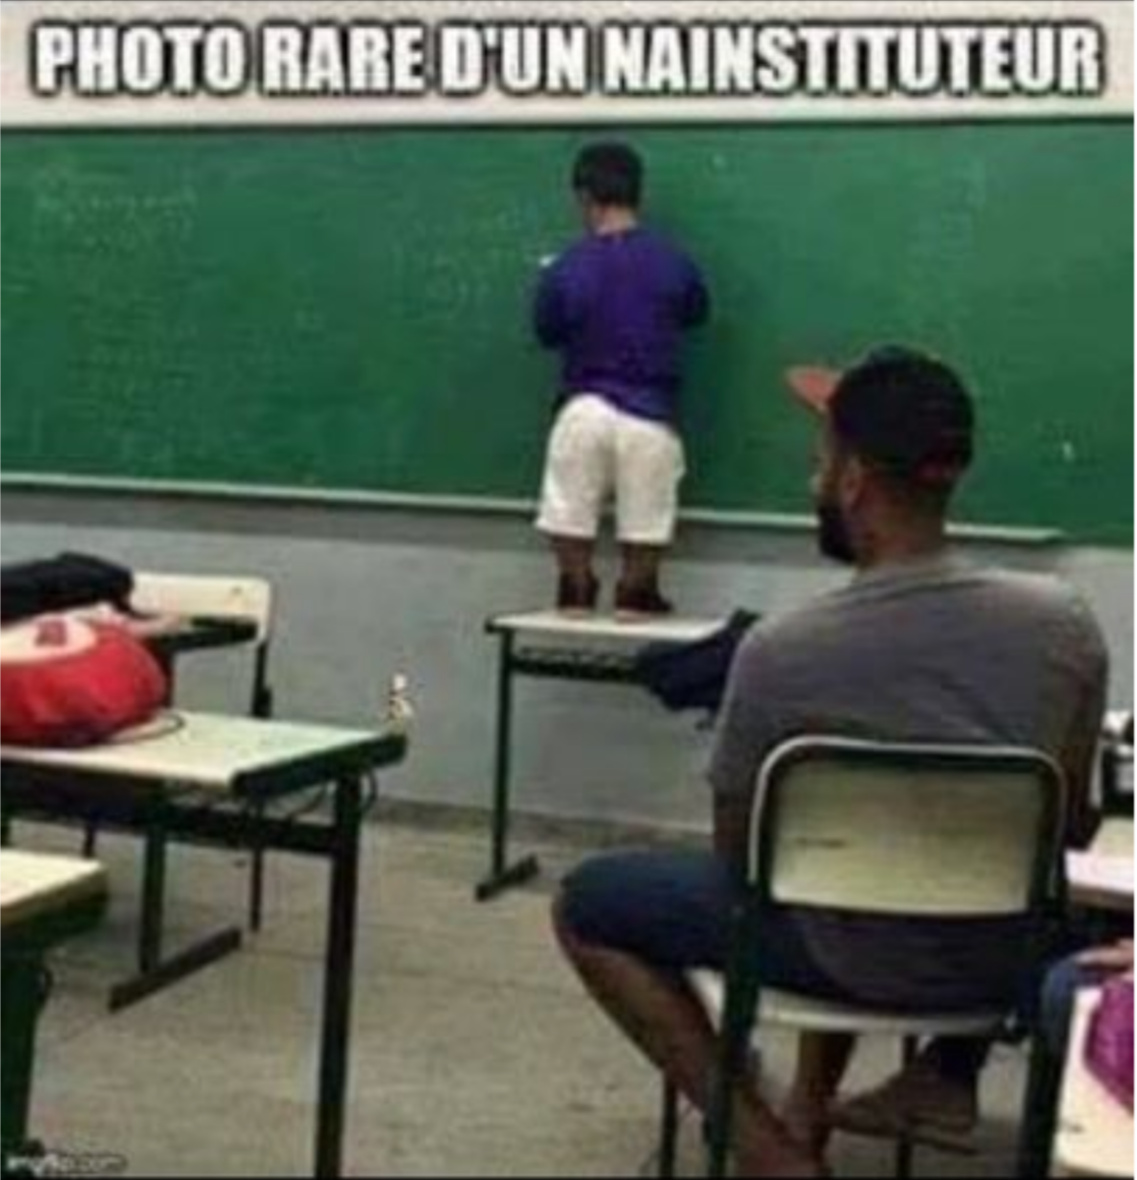 Photo rare d'un nainstituteur - meme